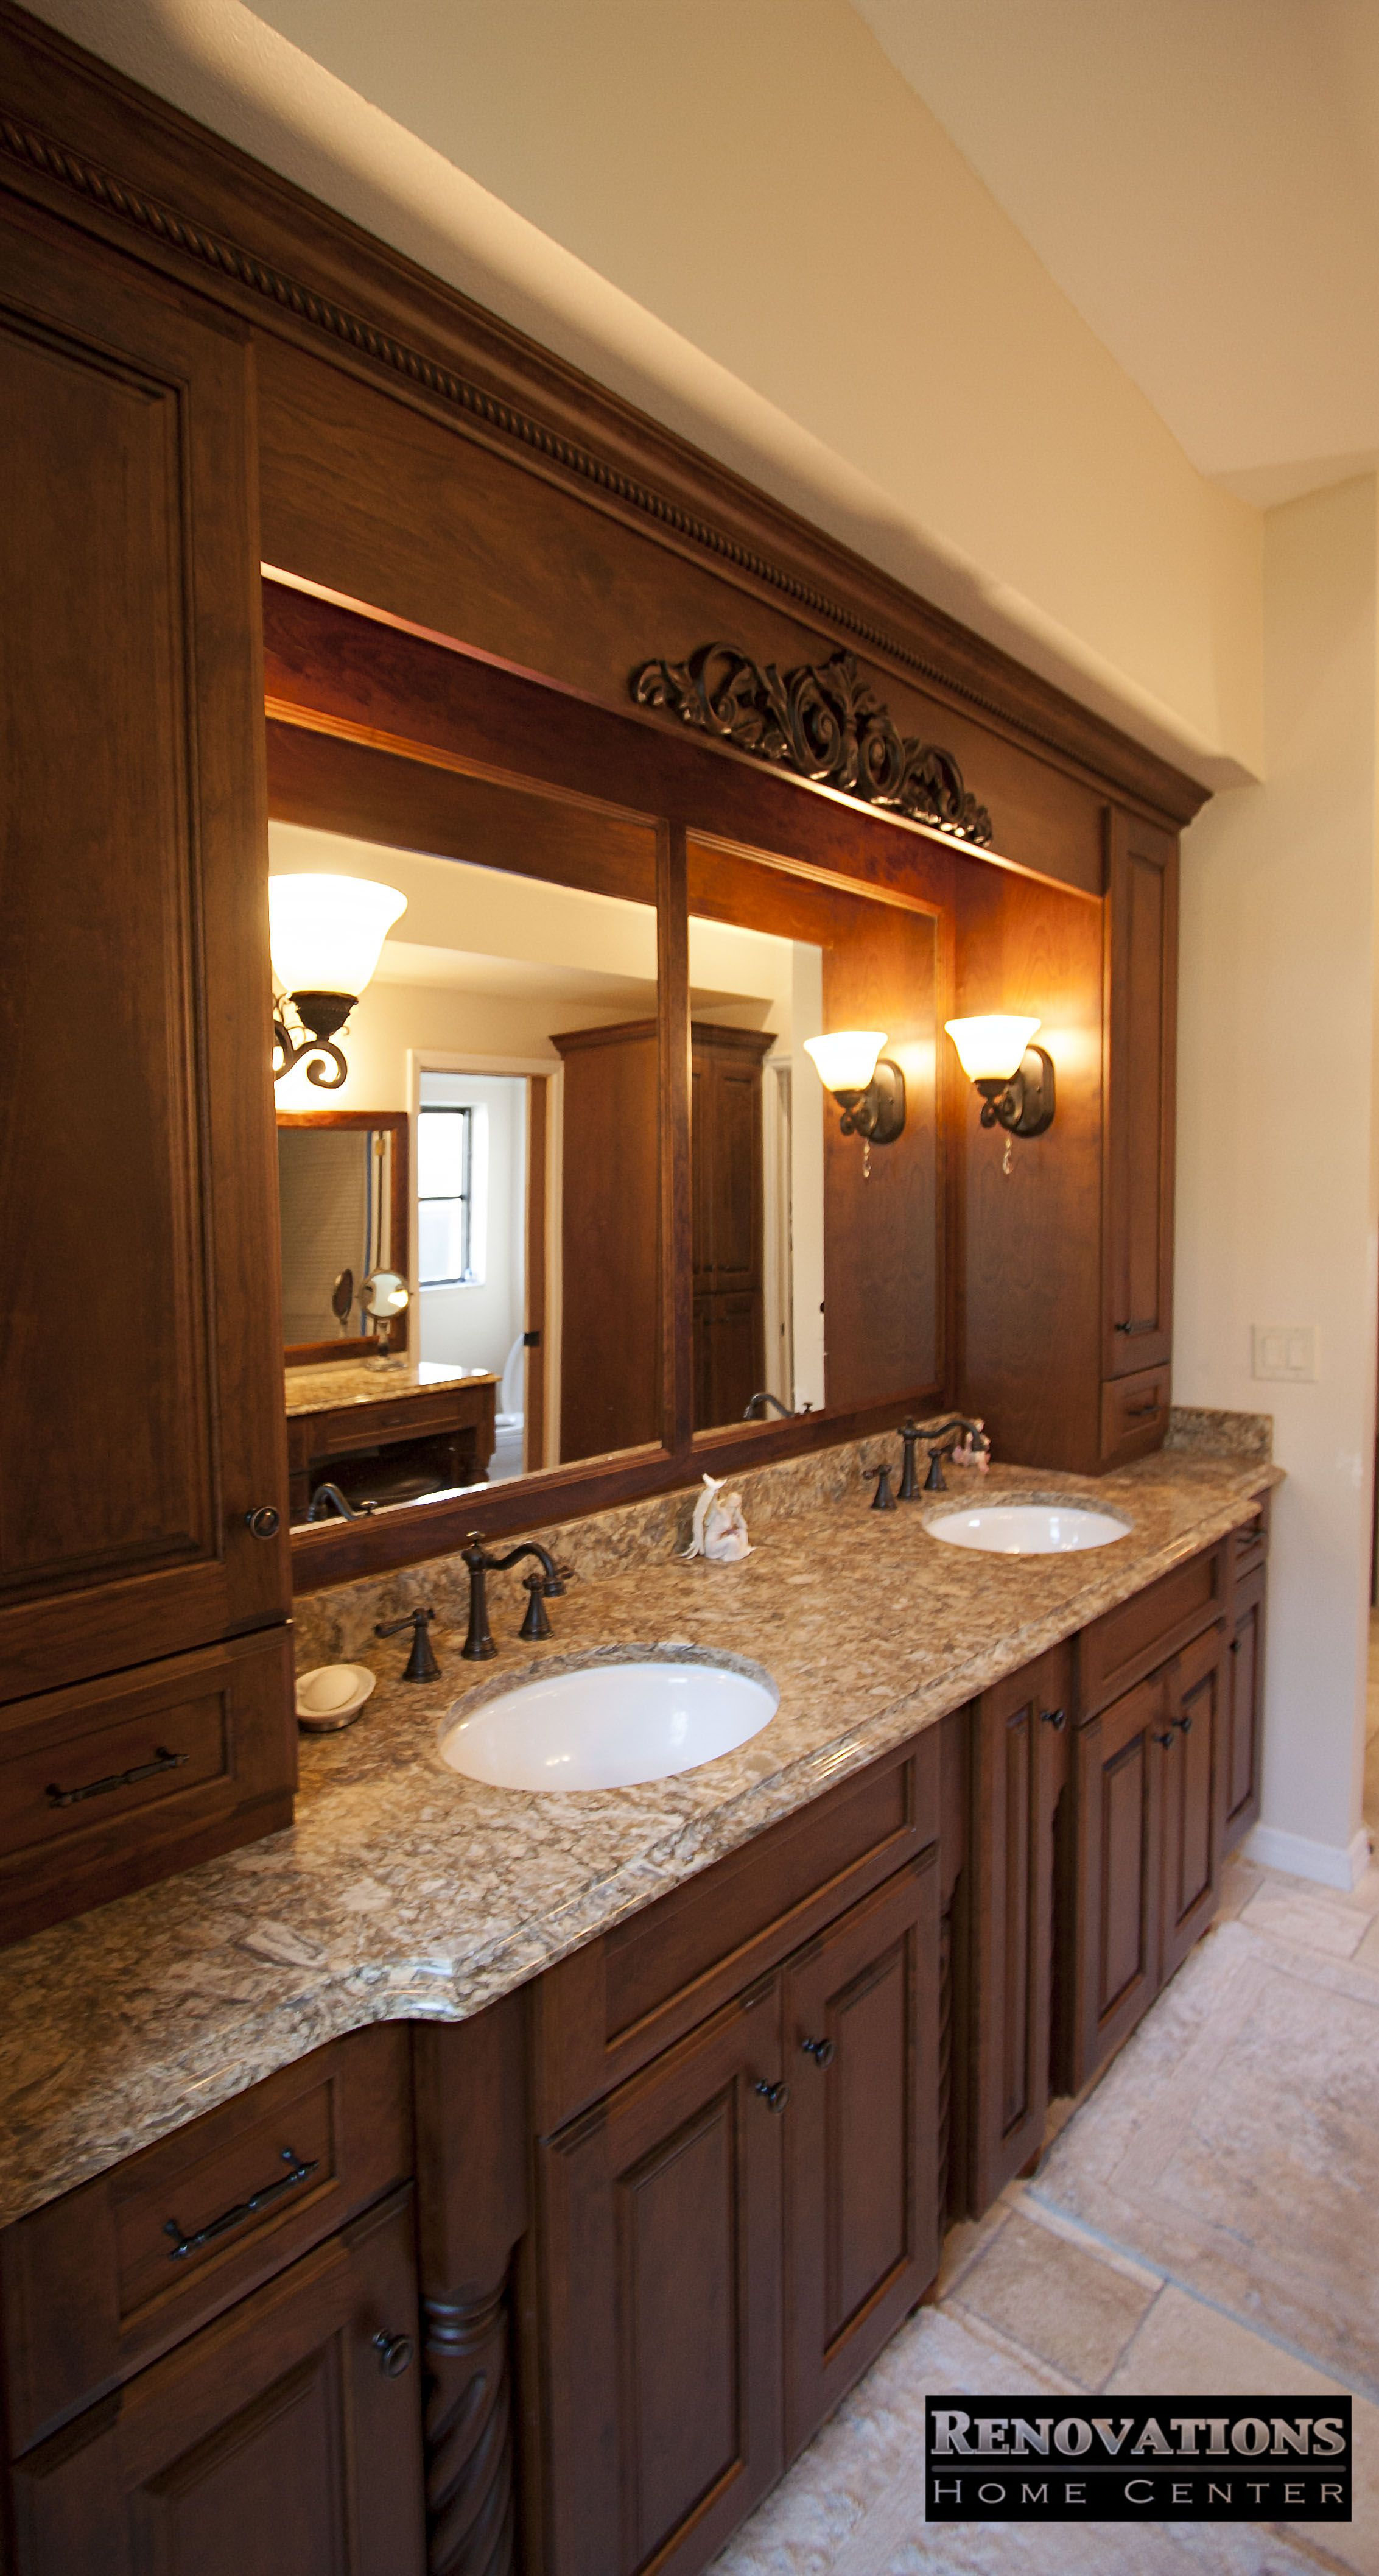 Master Bathroom Renovation For Our Client In Palm Harbor We Replaced All Cabinetry With Wood Countertops Kitchen And Bath Remodeling Kitchen Bathroom Remodel